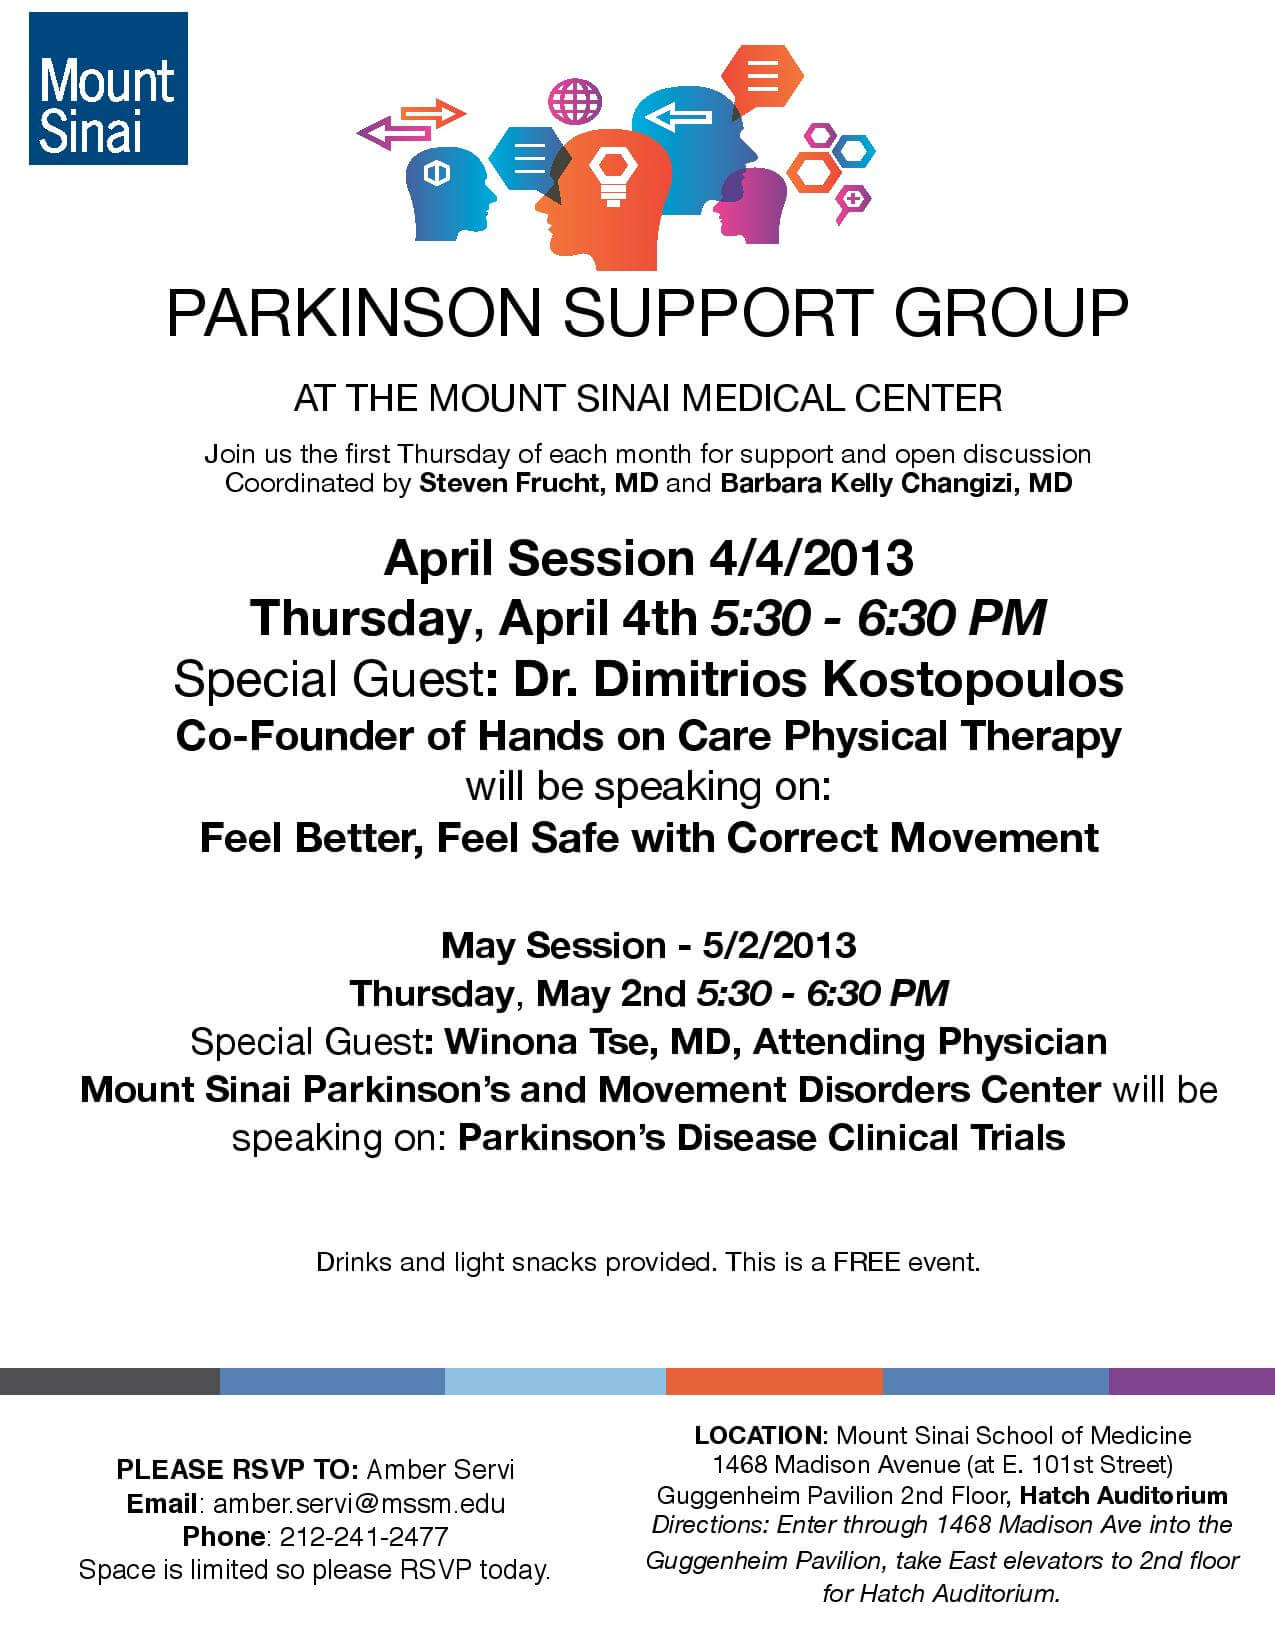 parkinsons support group flyer 4 4 13 Parkinsons Support Group